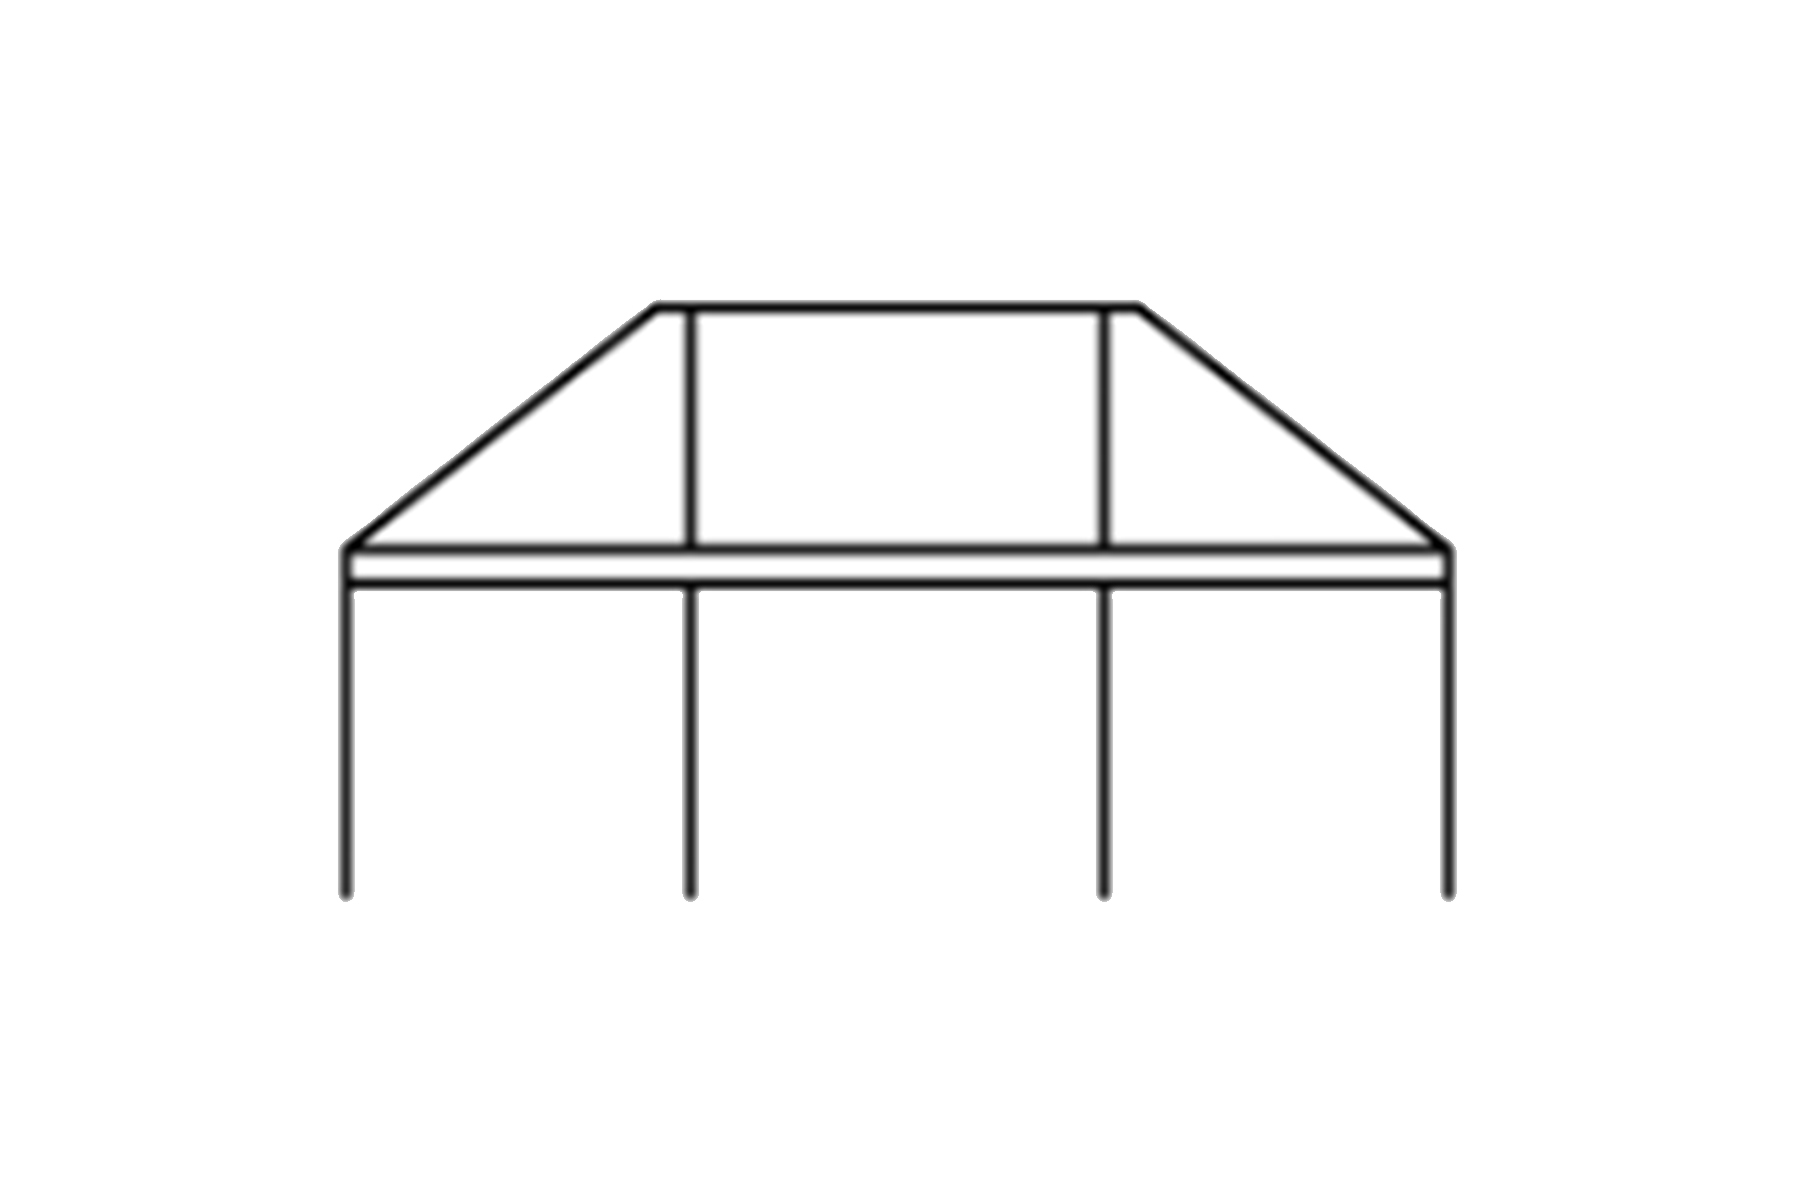 40 x 55 Frame Tent